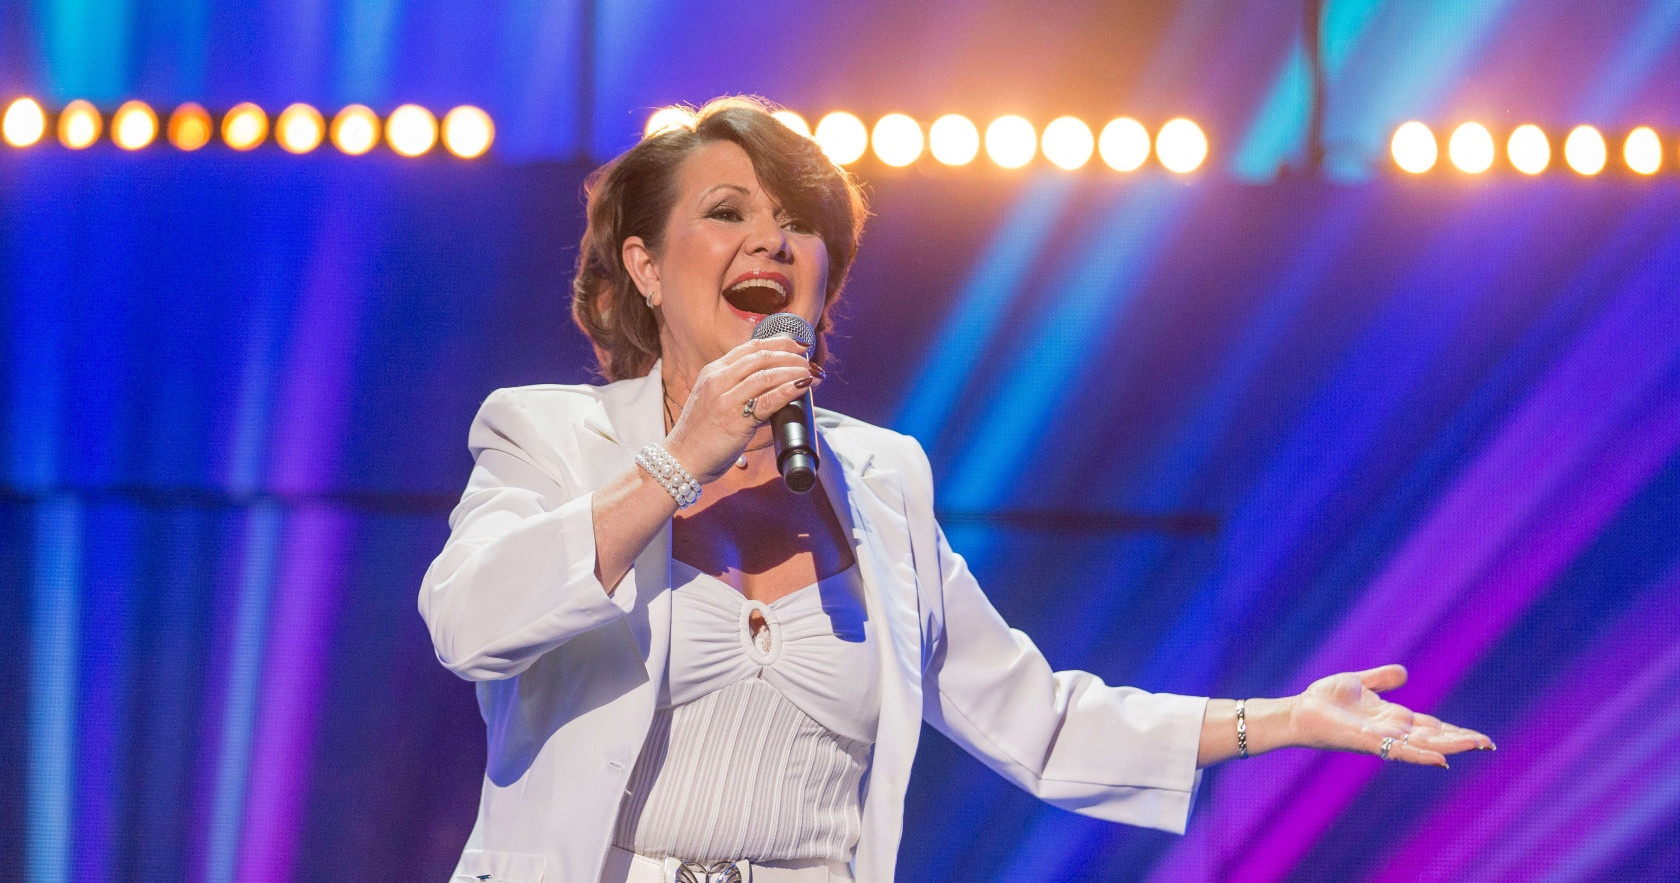 Anne-Marie David, Luxembourg. Image source: BBC